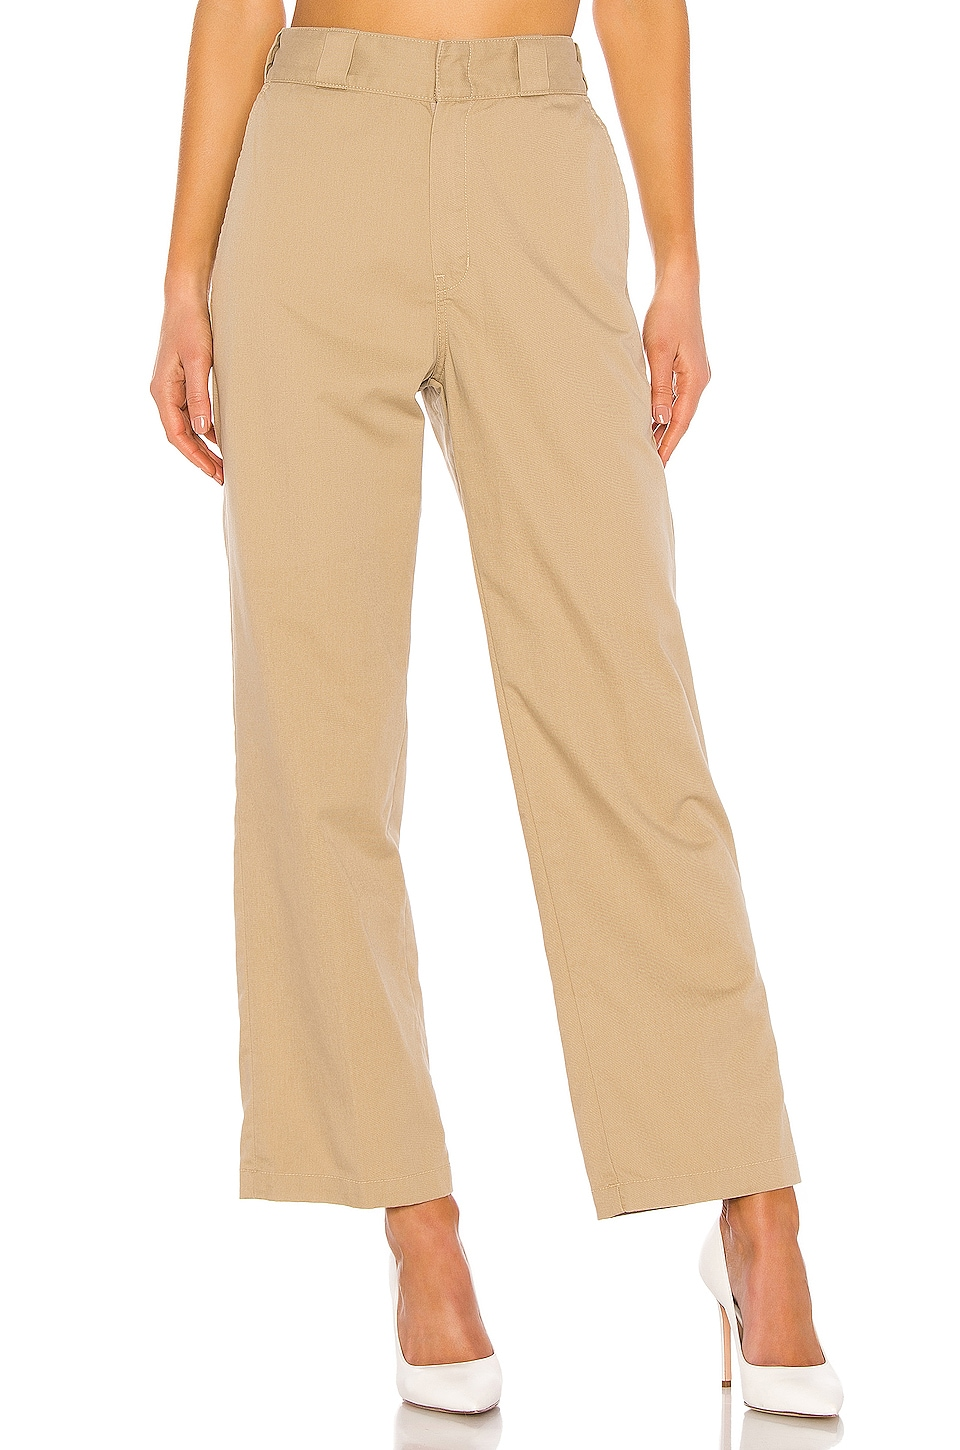 RE/DONE IDGAF Trouser in Khaki